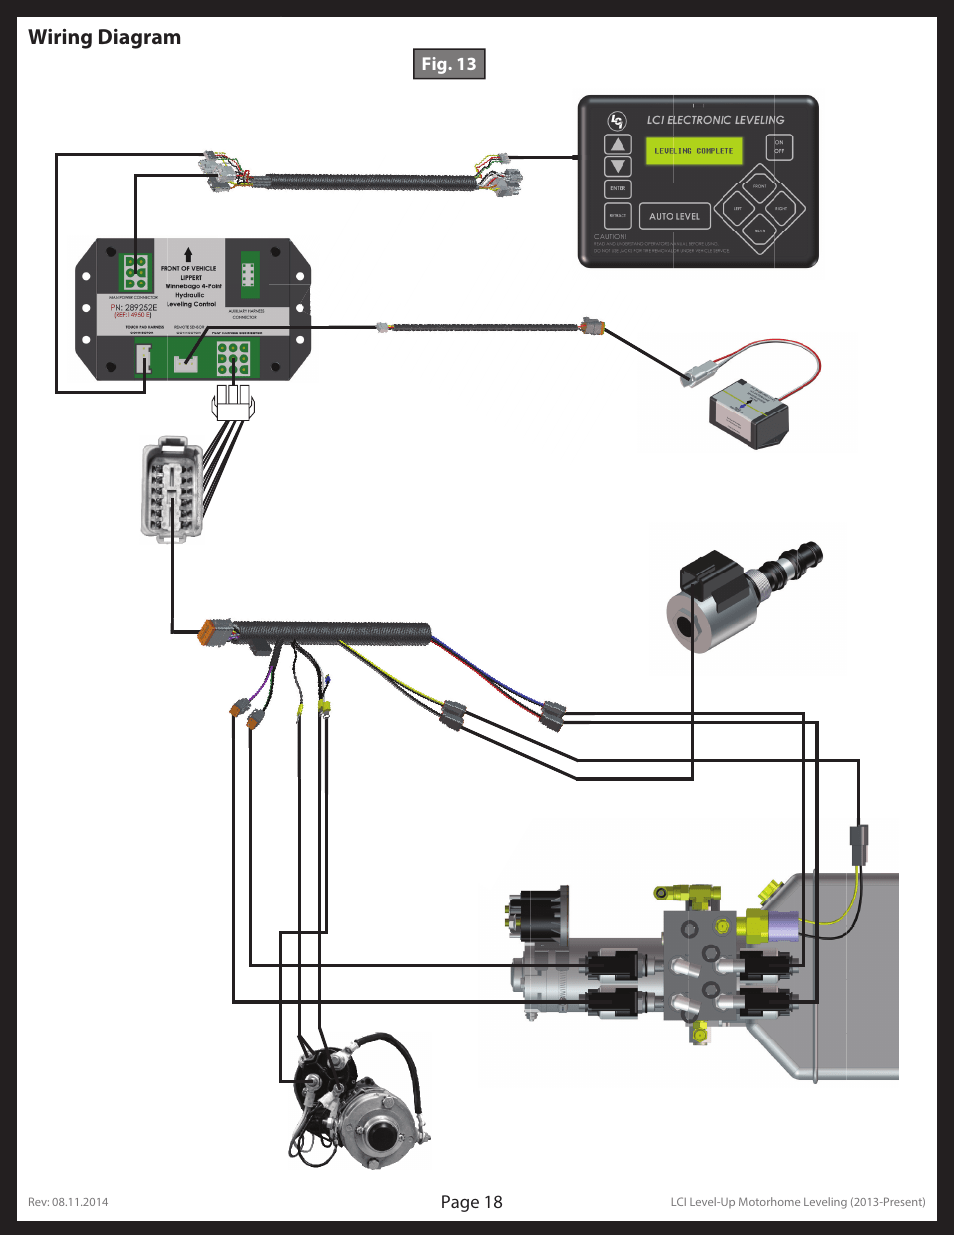 Ge Motor Wiring Diagram Auto Electrical A1 I Have A Dbxr463ed1ww Electric Dyrer And Lost The